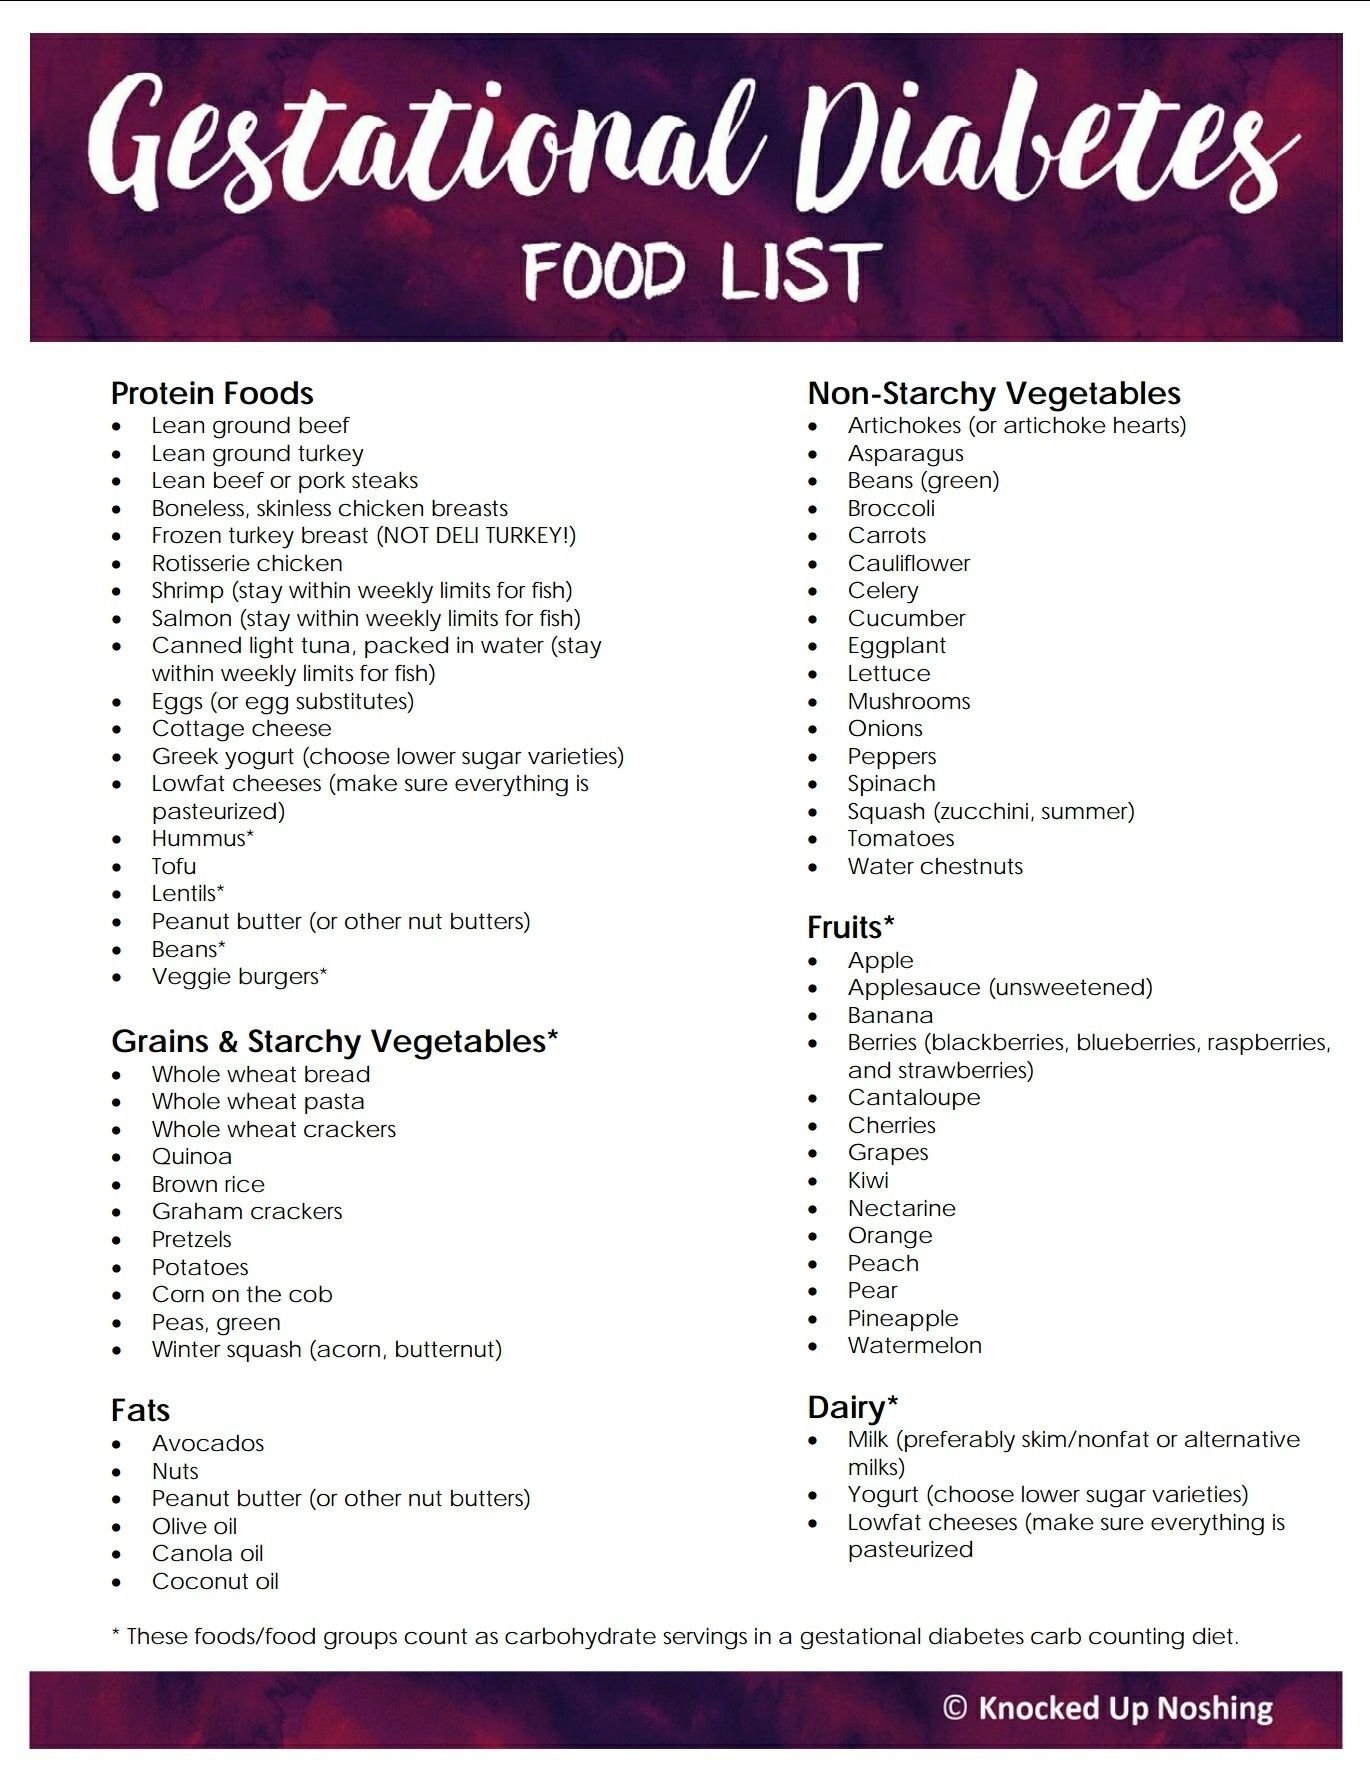 10 Awesome Meal Ideas For Gestational Diabetes